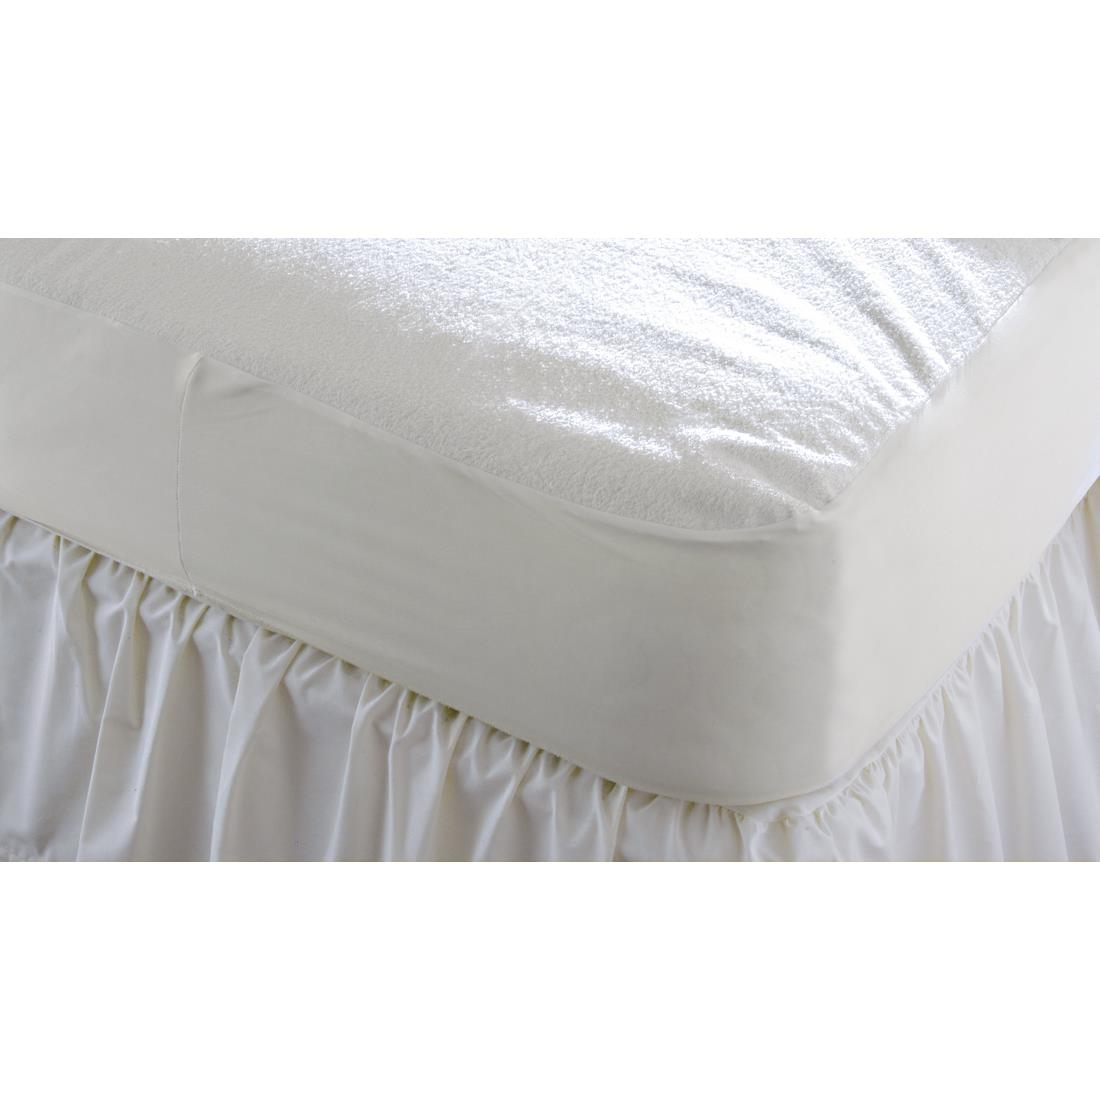 Image of Mitre Comfort Keepdry Mattress Protector Metric Single